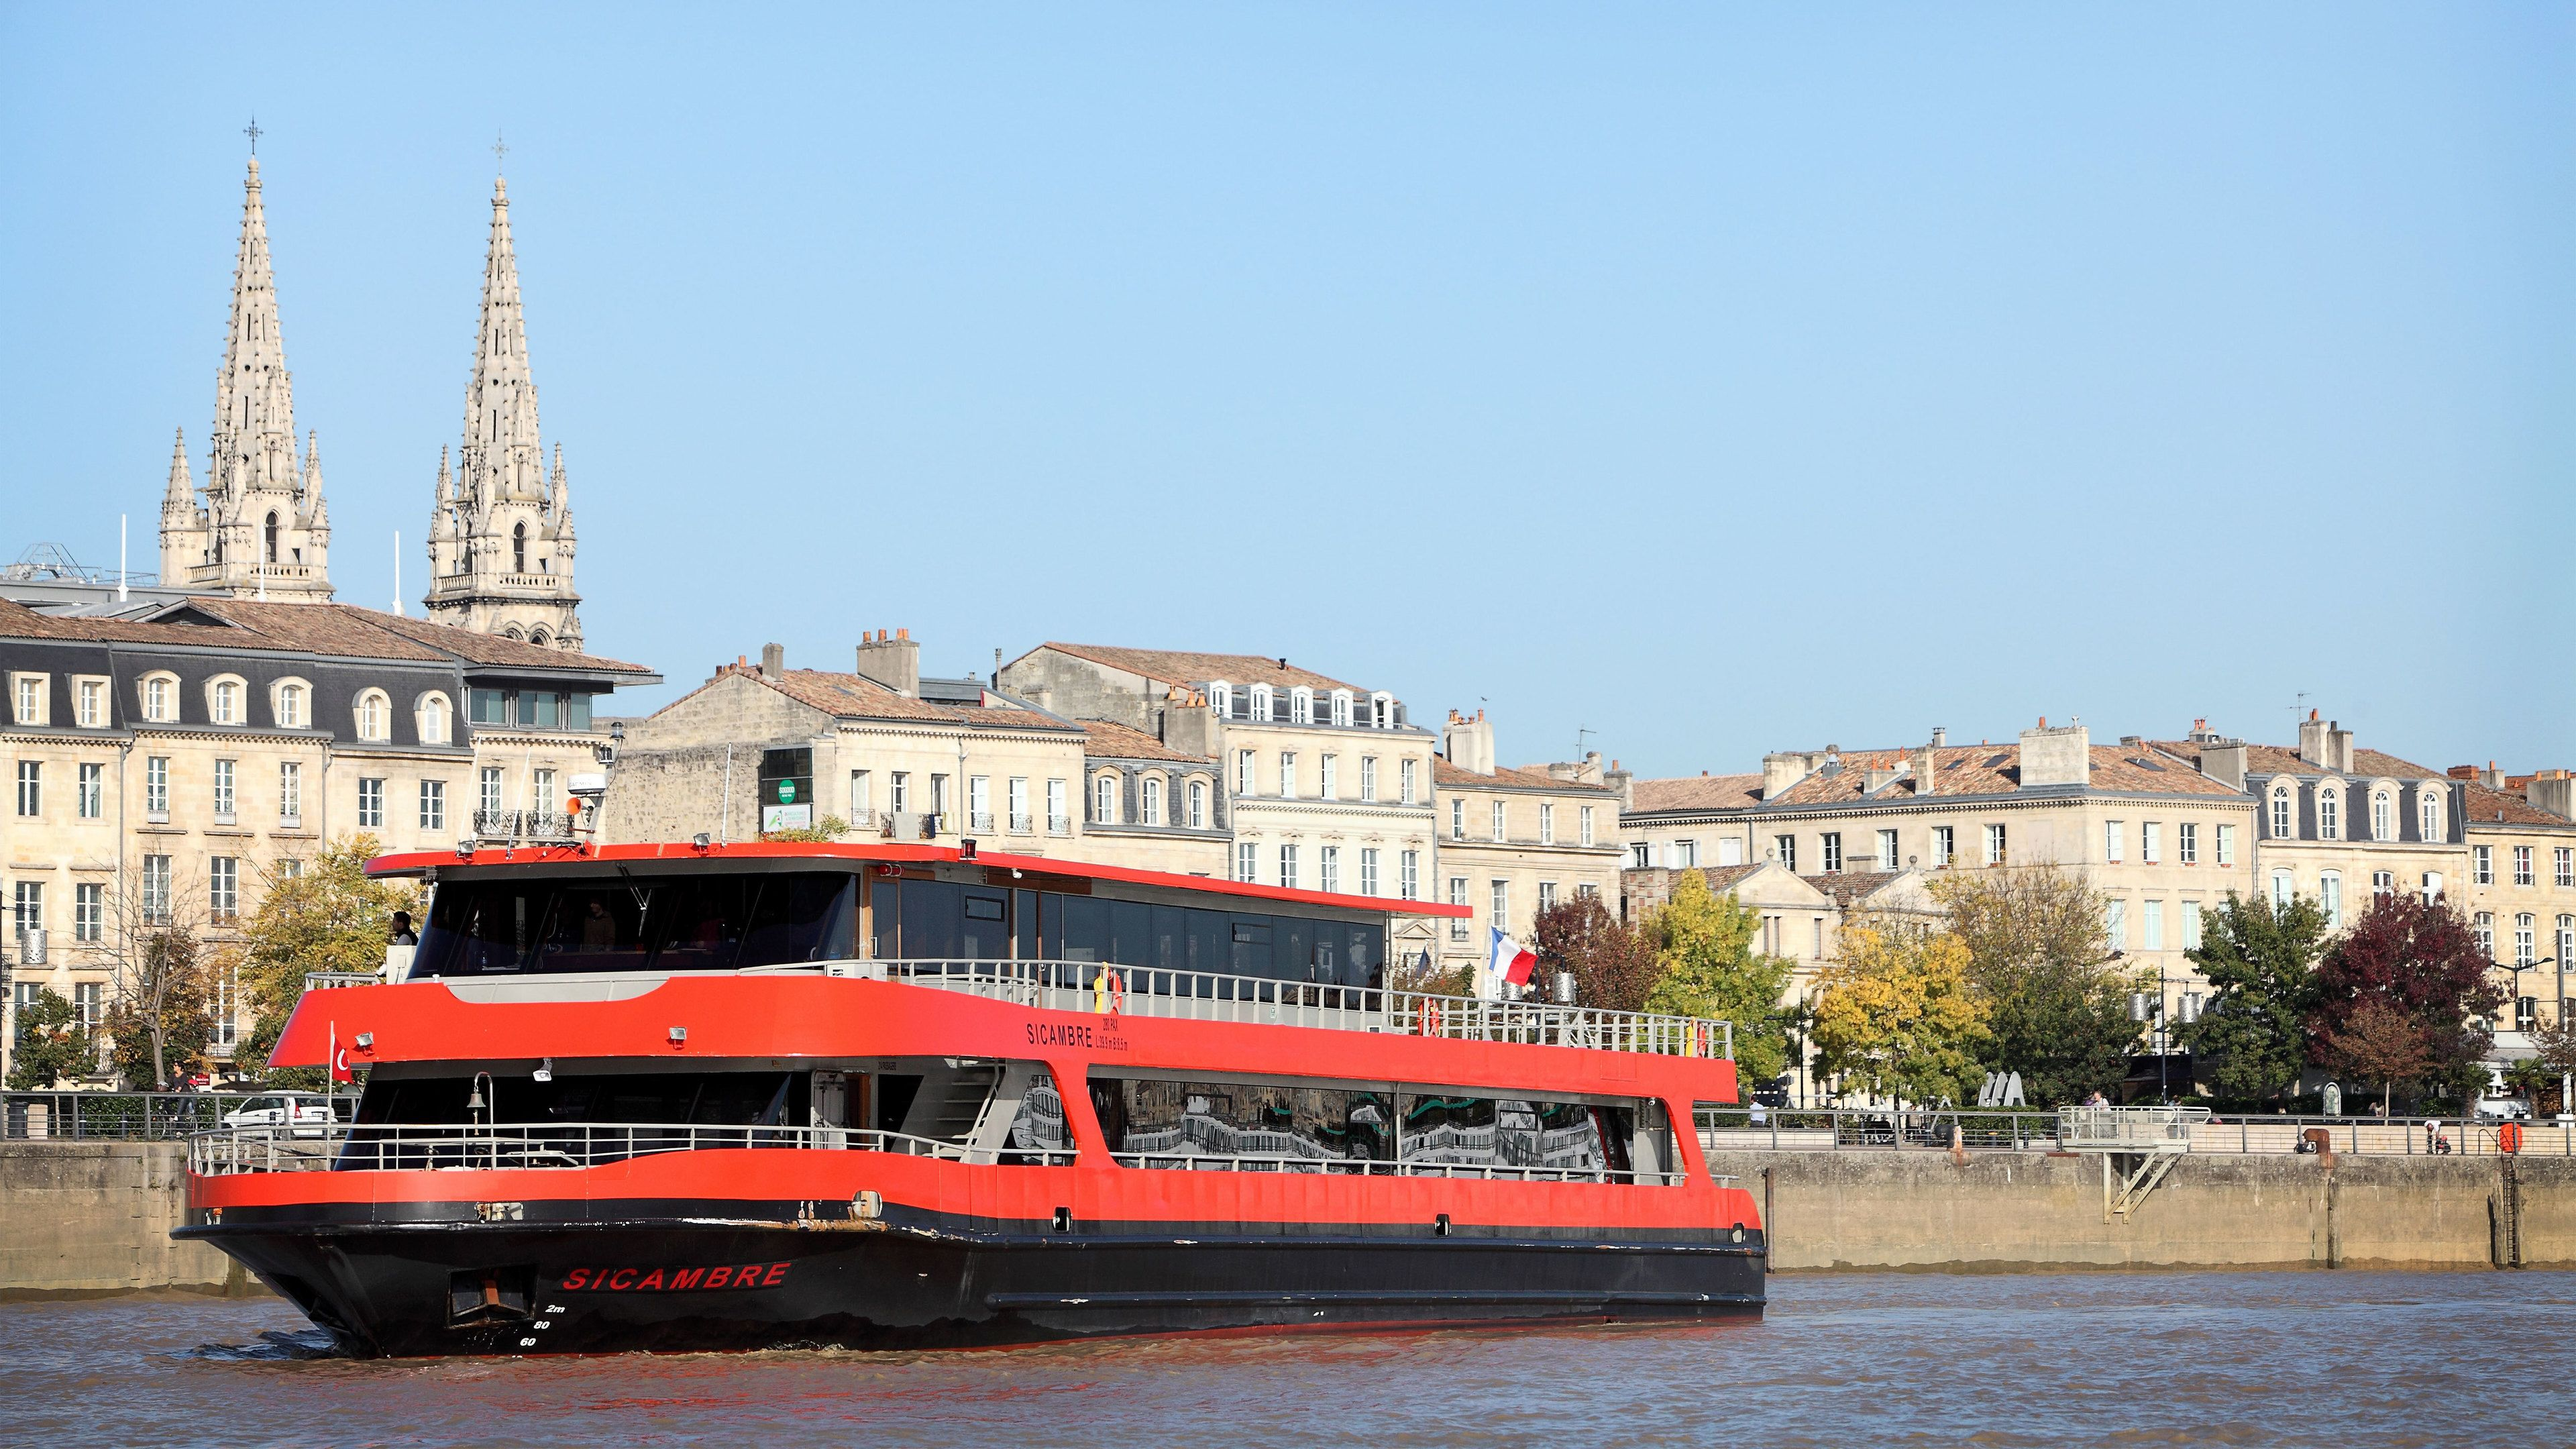 Boat with city in the background in Bordeaux